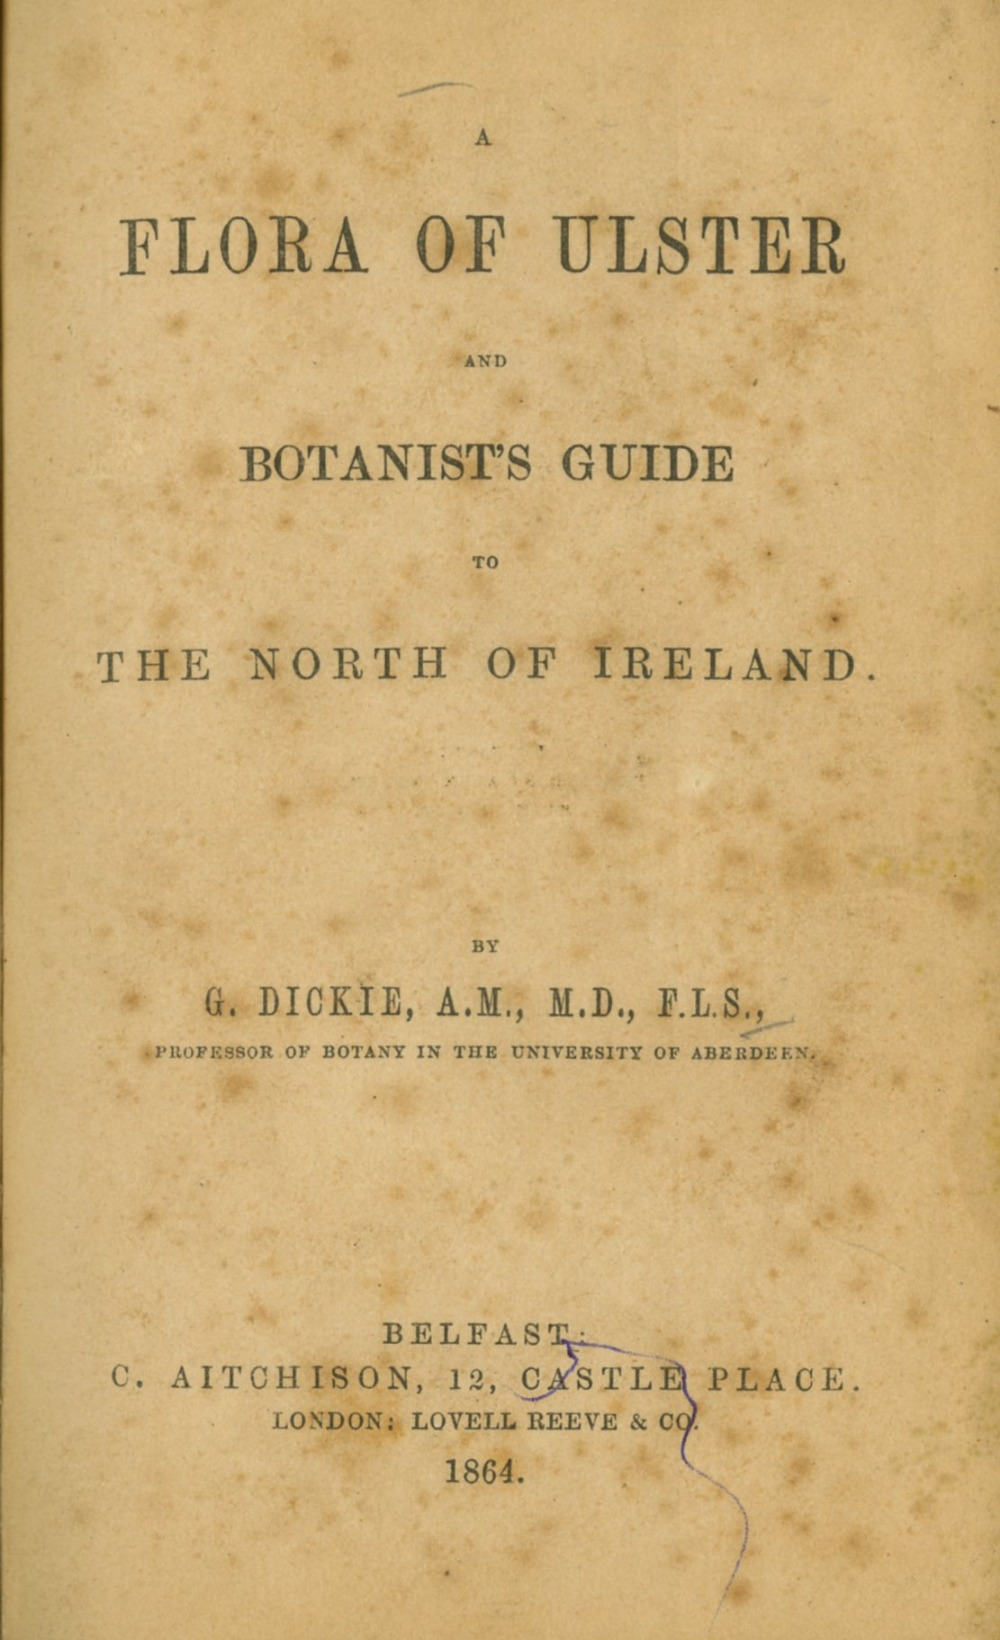 Dickie (G.) A Flora of Ulster and Botanists Guide to The North of Ireland, 8vo, Belfast (C.